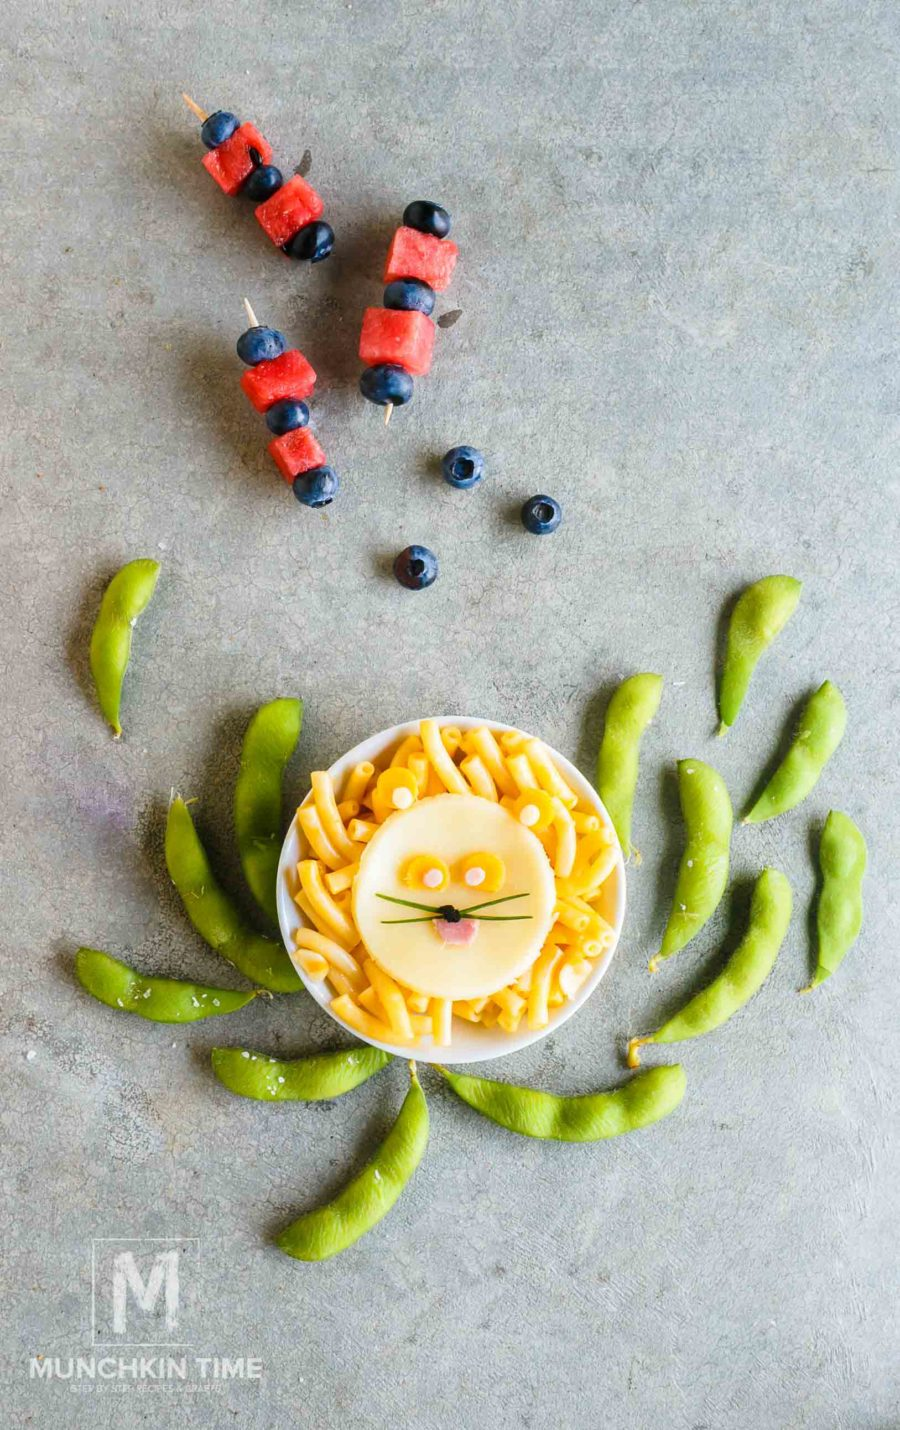 5 Easy School Lunch Ideas - super easy to put together and will put a smile on kid's face!